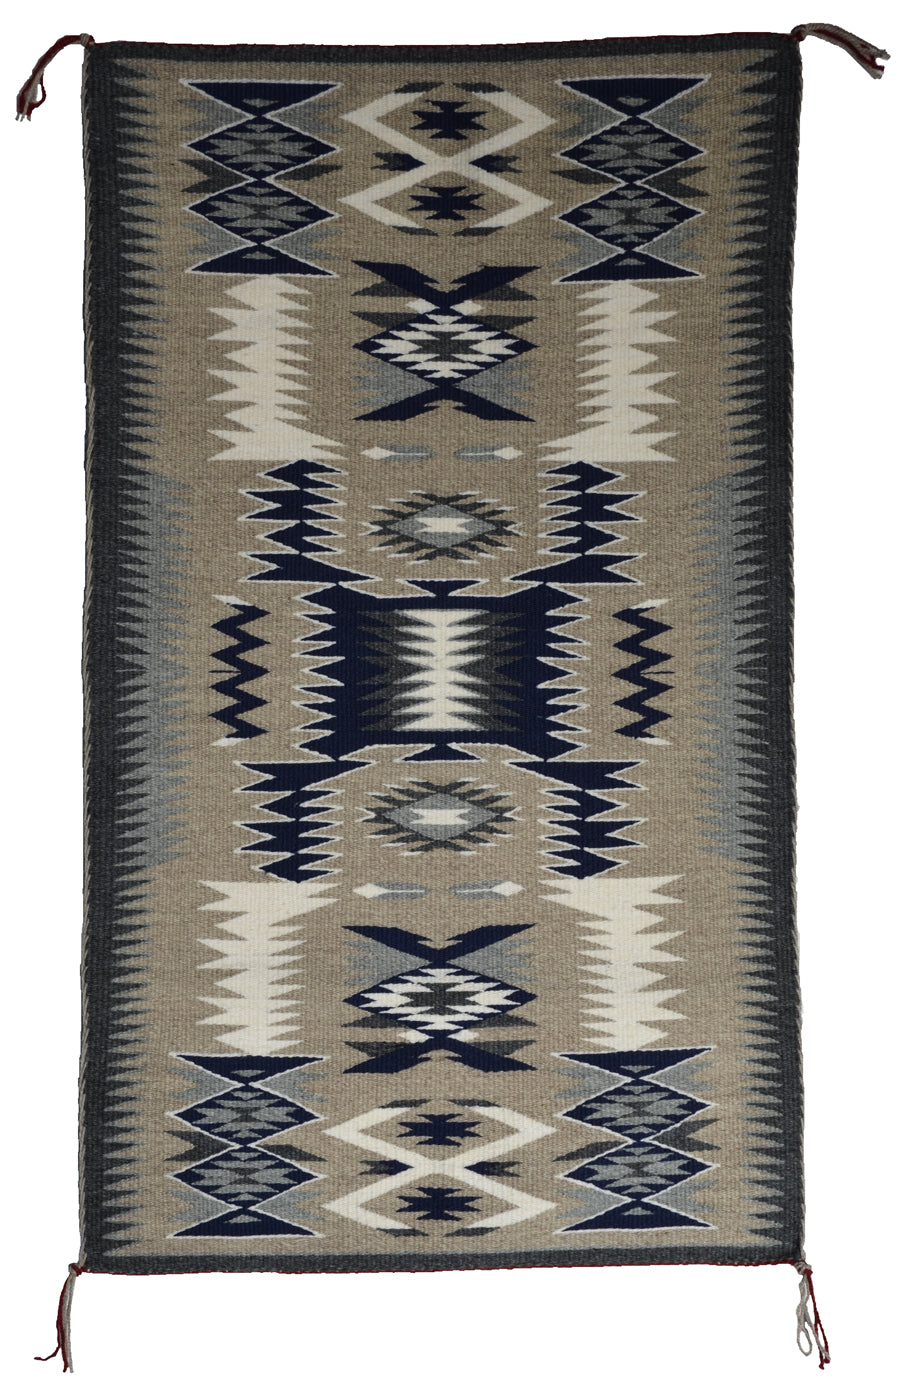 "SOLD - Storm Pattern Navajo Rug : Gabrielle Chester : 3398 : 35.5"" x 20.5"" - Getzwiller's Nizhoni Ranch Gallery"